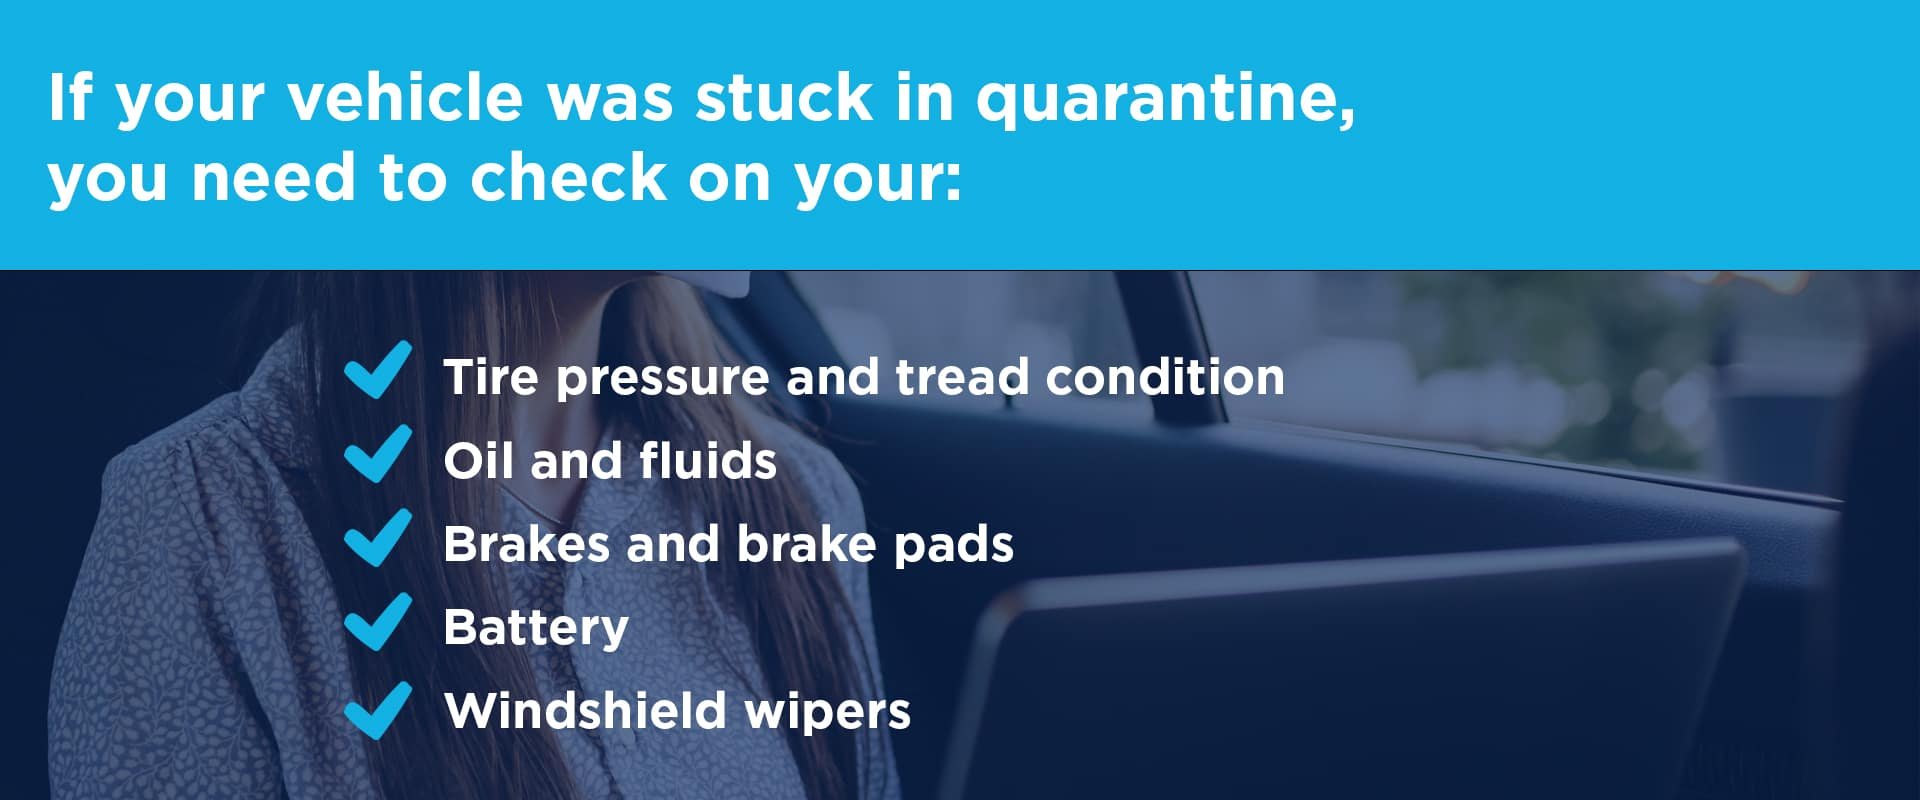 f your vehicle was stuck in quarantine, you need to check on your: Tire pressure and tread condition, Oil and fluids, Brakes and brake pads, Battery, Windshield wipers